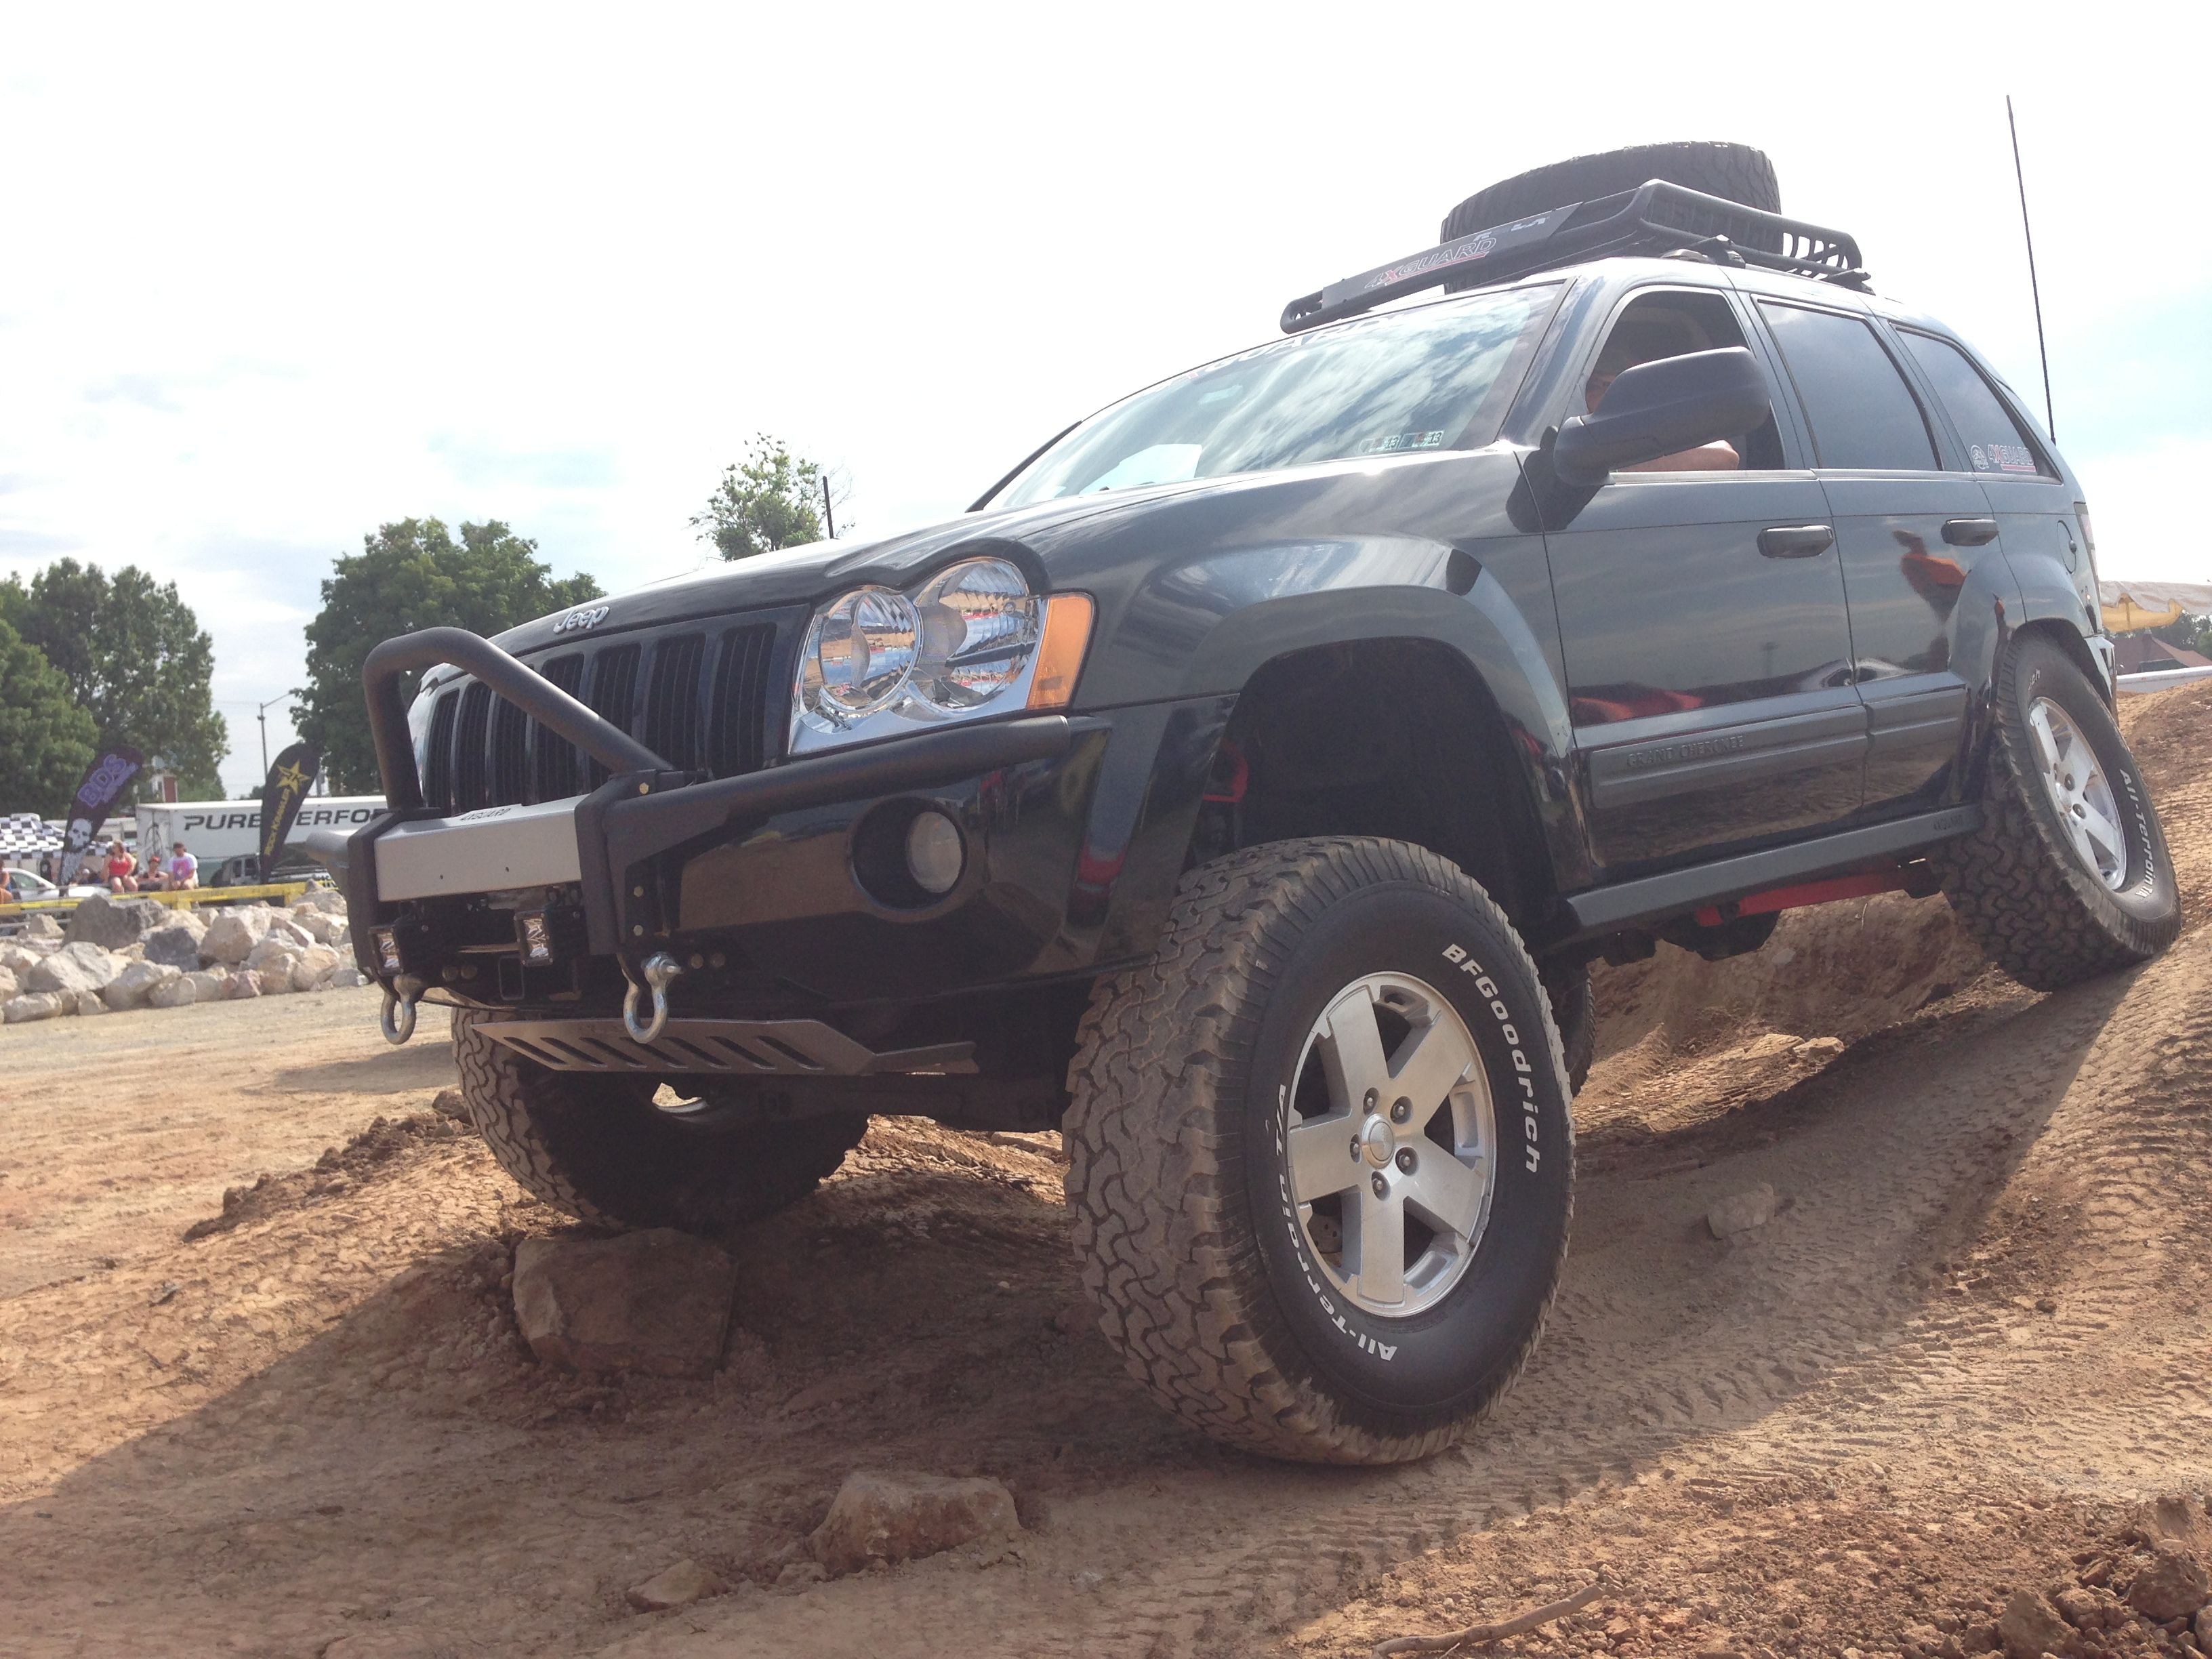 2000 jeep grand cherokee front bumper jpeg http carimagescolay casa